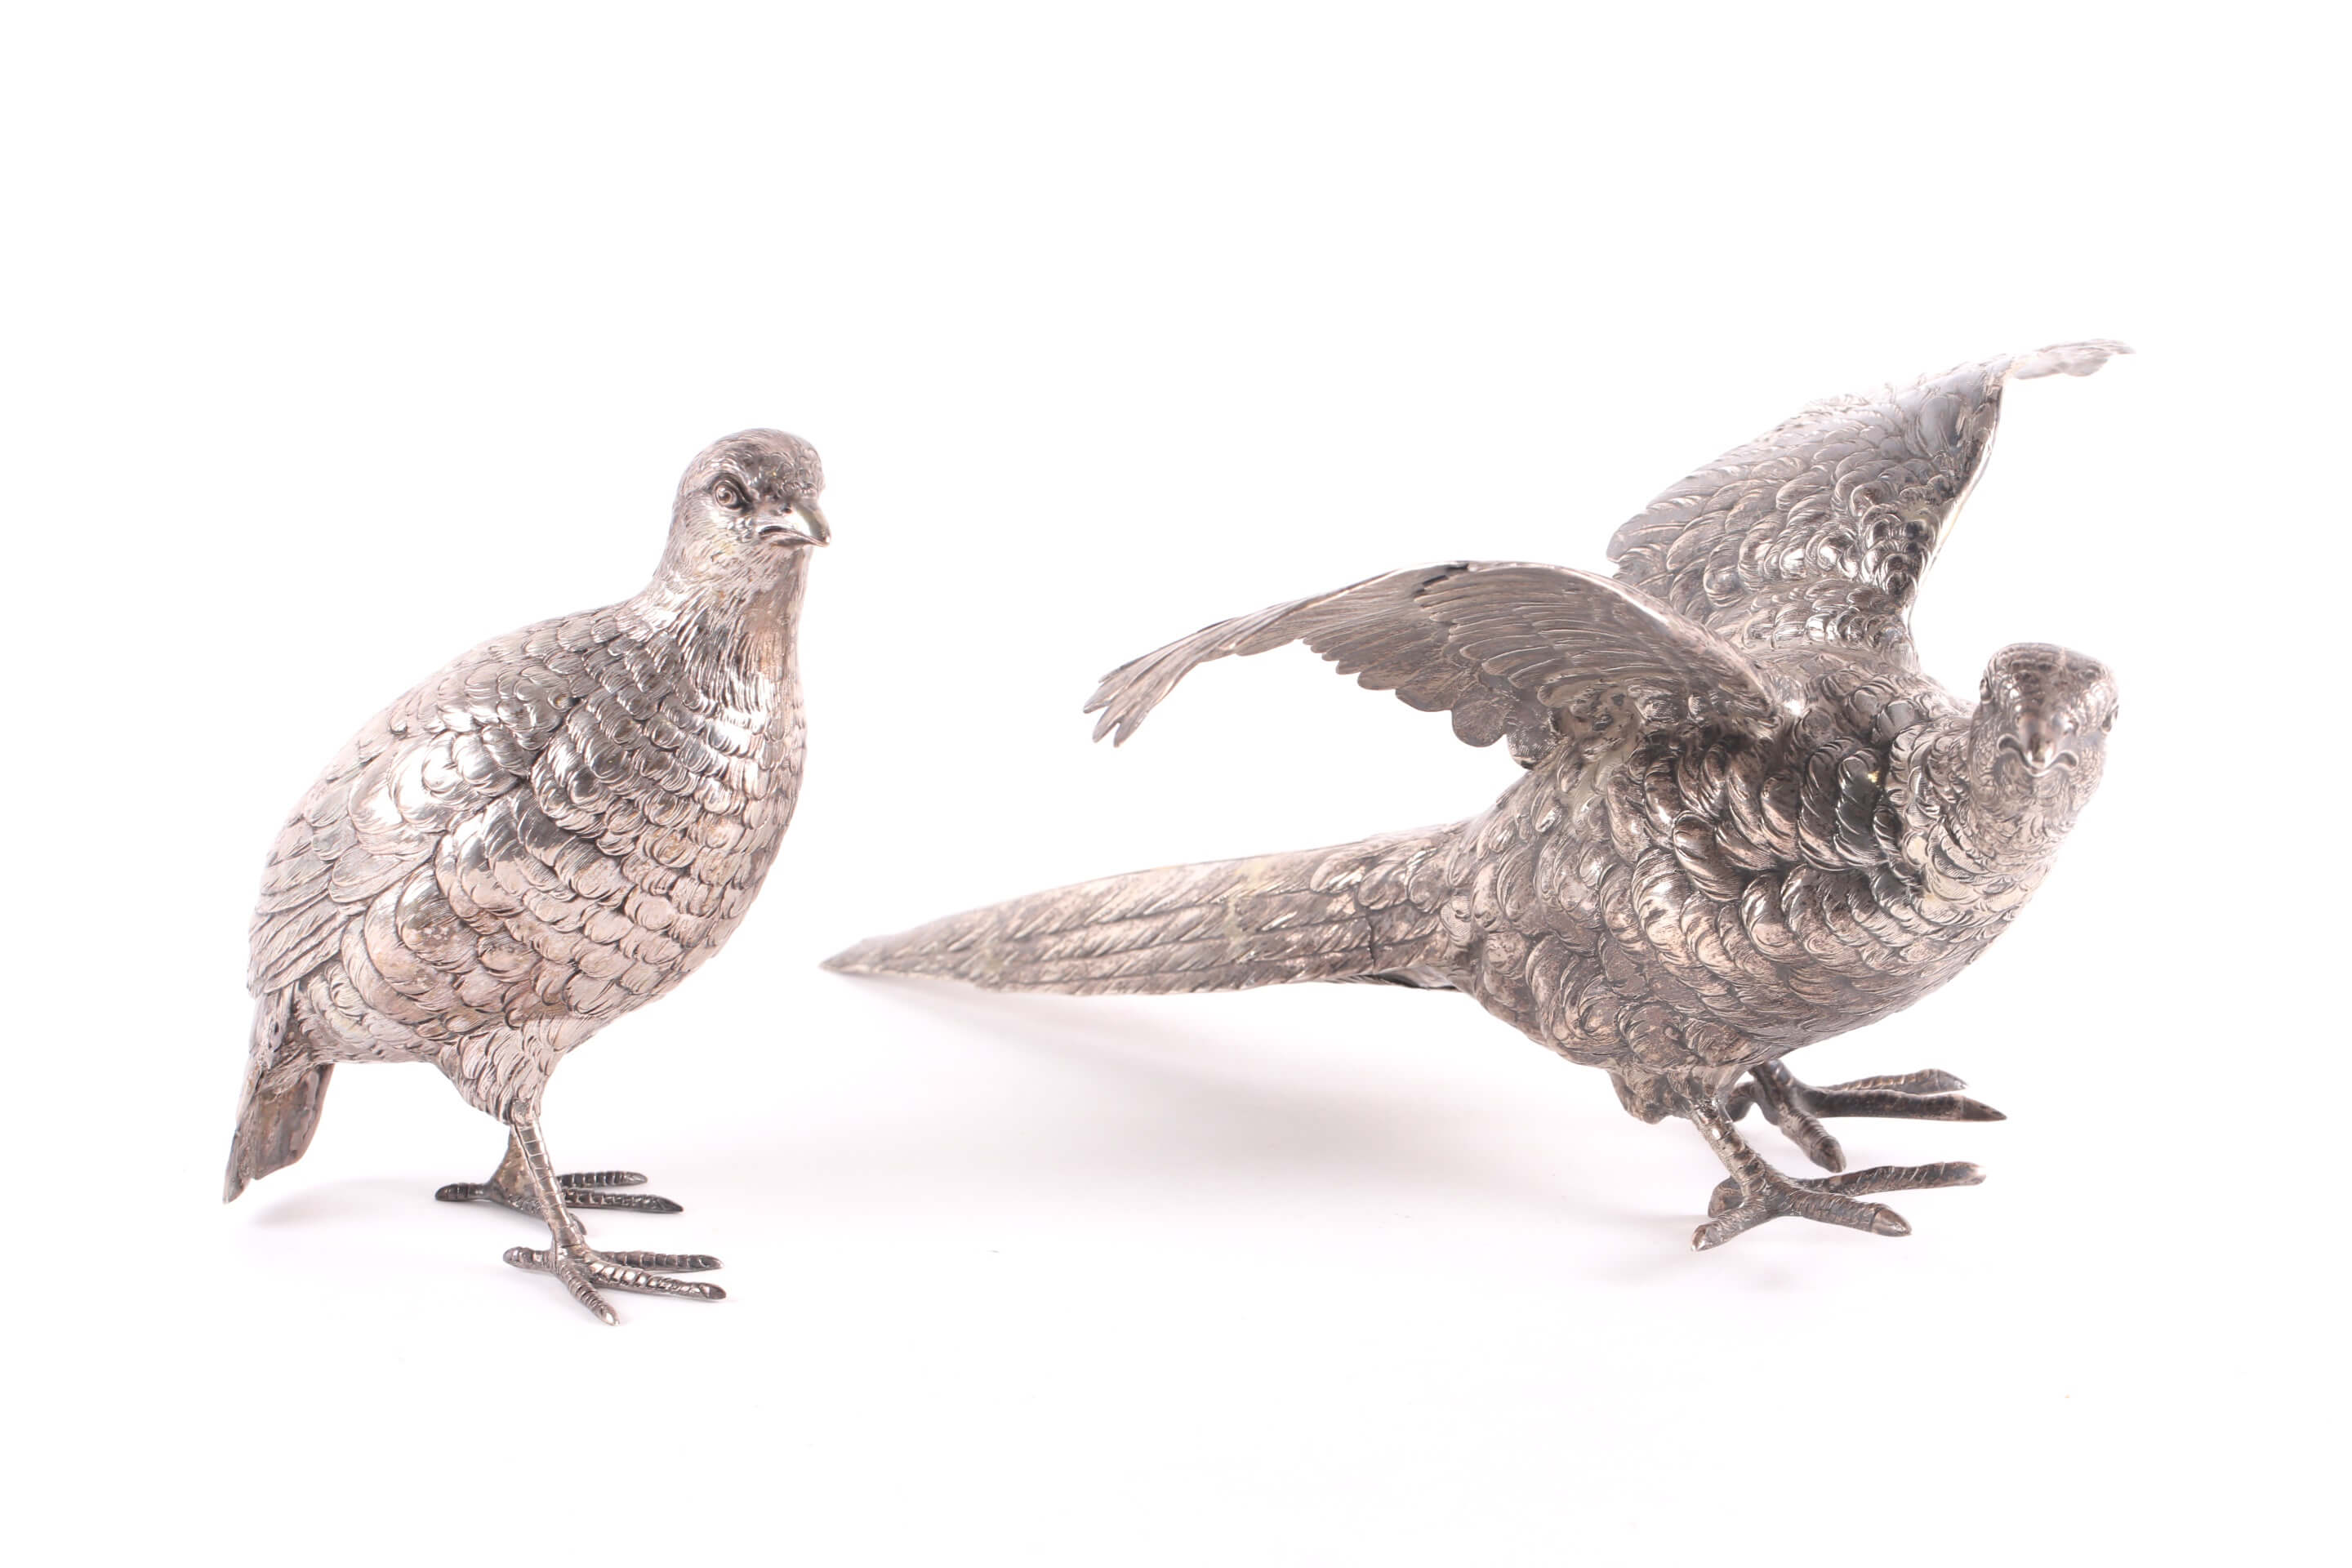 A silver pheasant cock and hen, each with import marks for Berthold Muller, 1910 & 1913